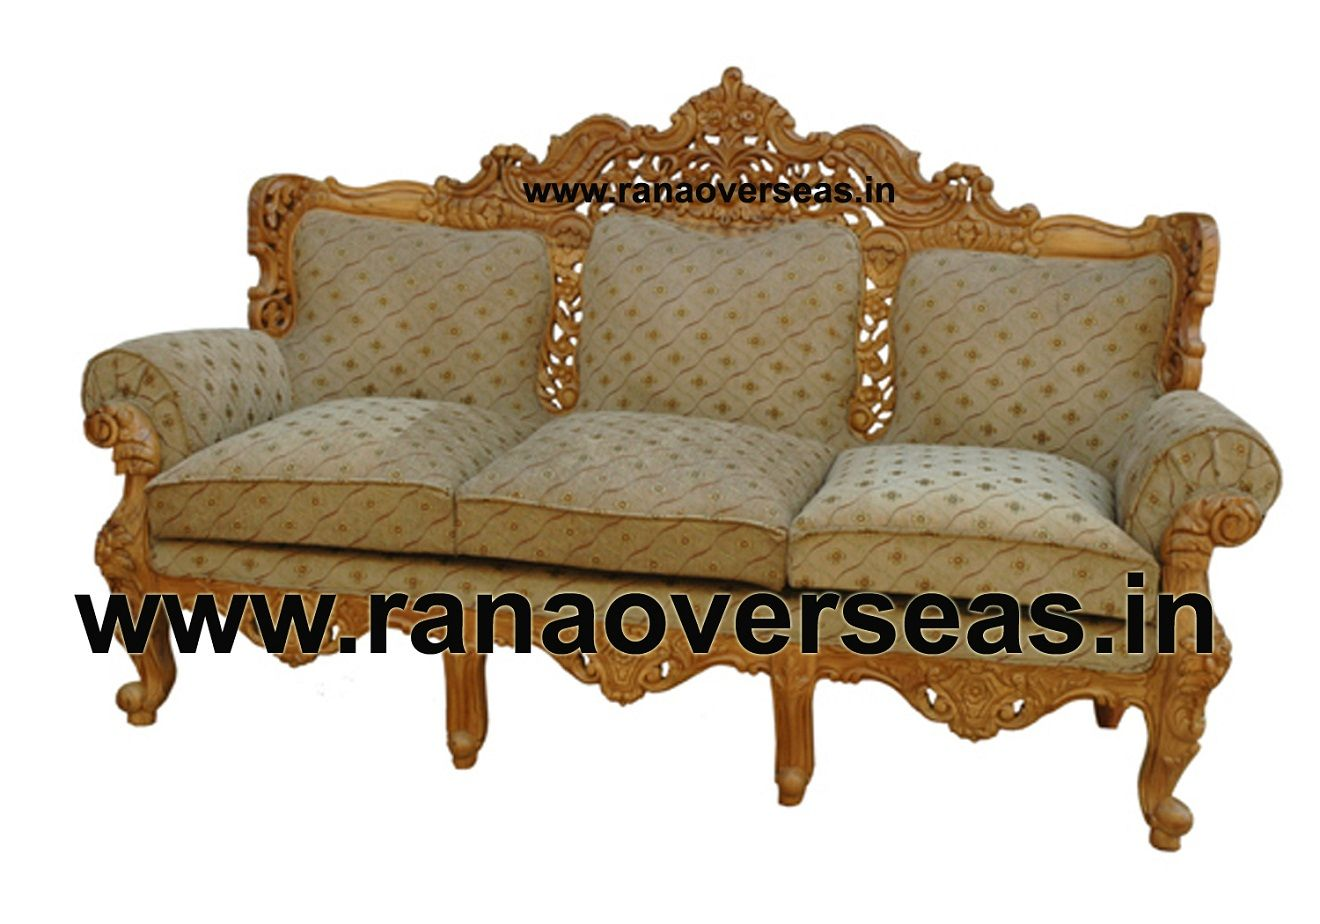 best sofa designs in the world single seater singapore wooden set sets remain a solid and